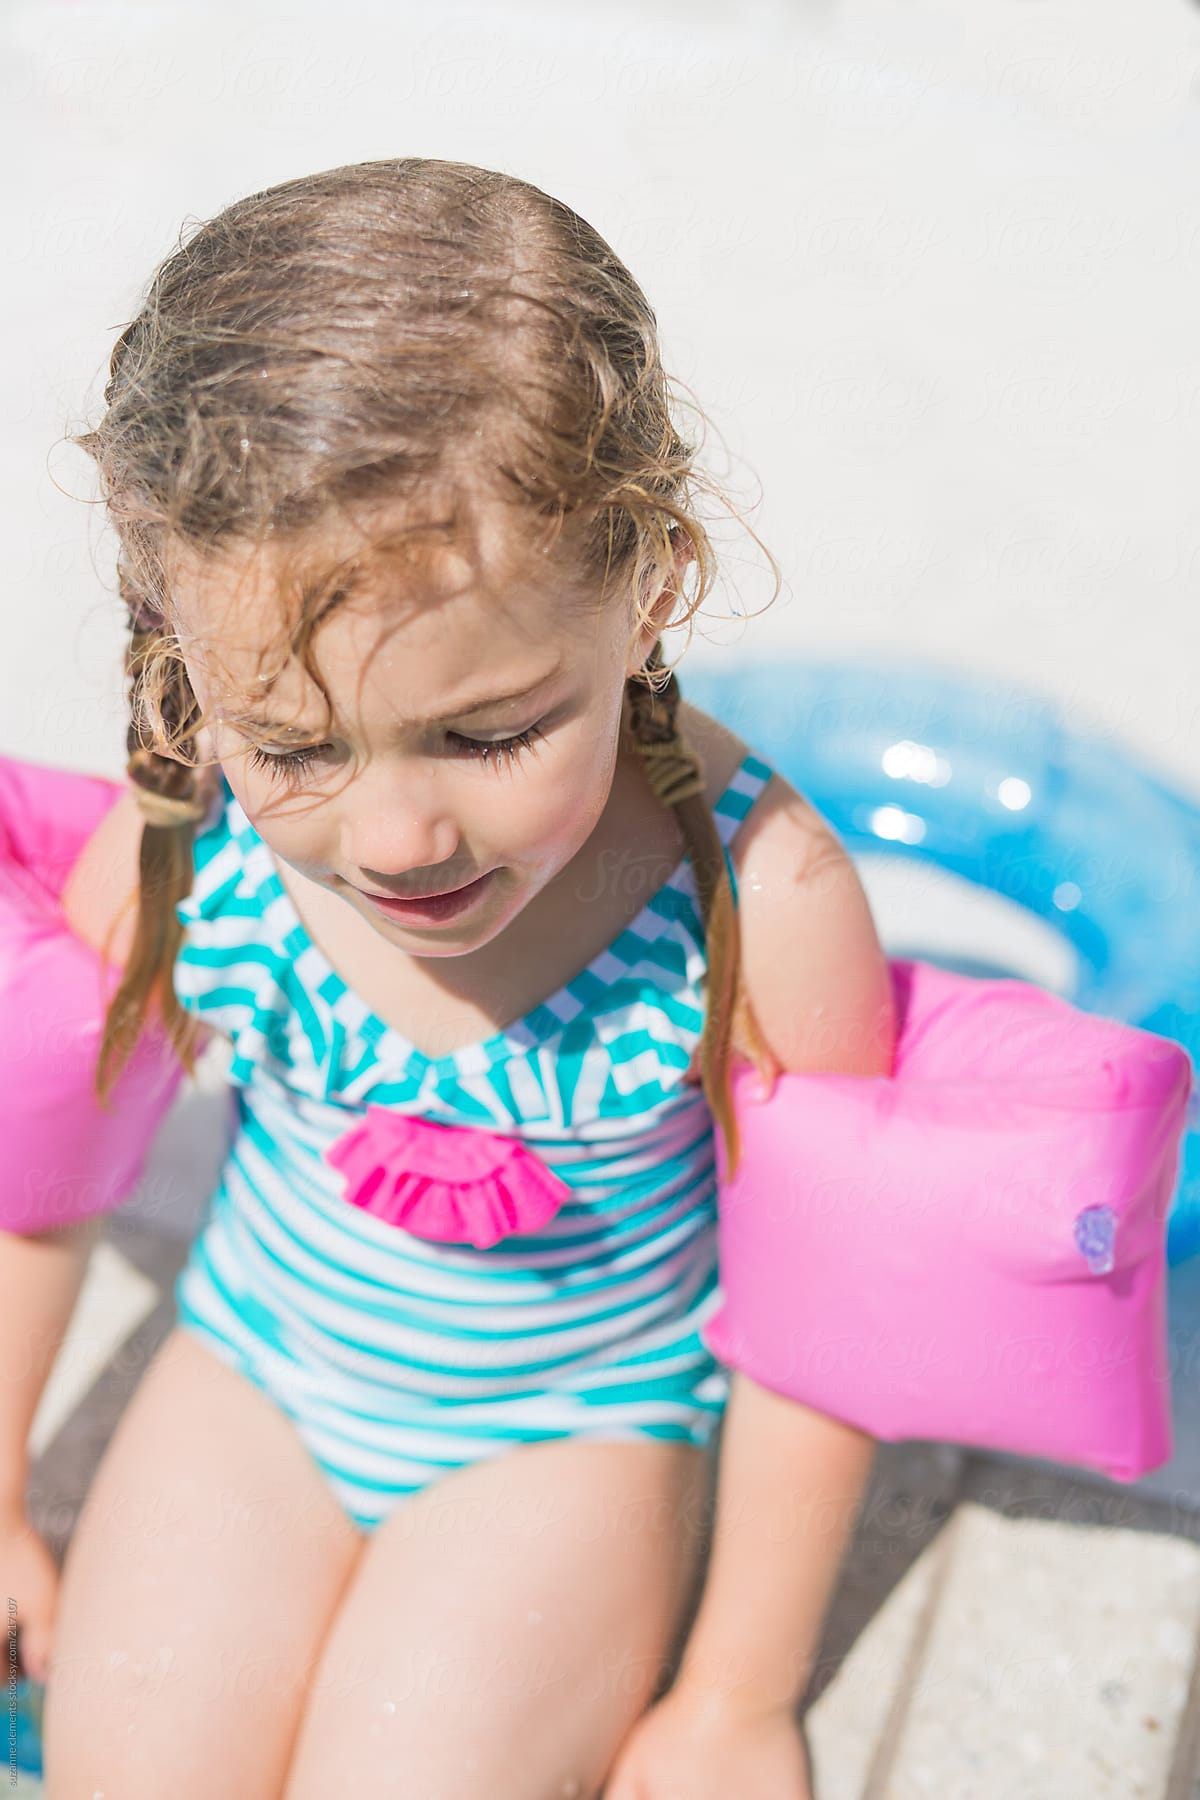 3b1053fd582 Little Girl in Her Swimsuit and Swimmies at the Pool by suzanne clements  for Stocksy United